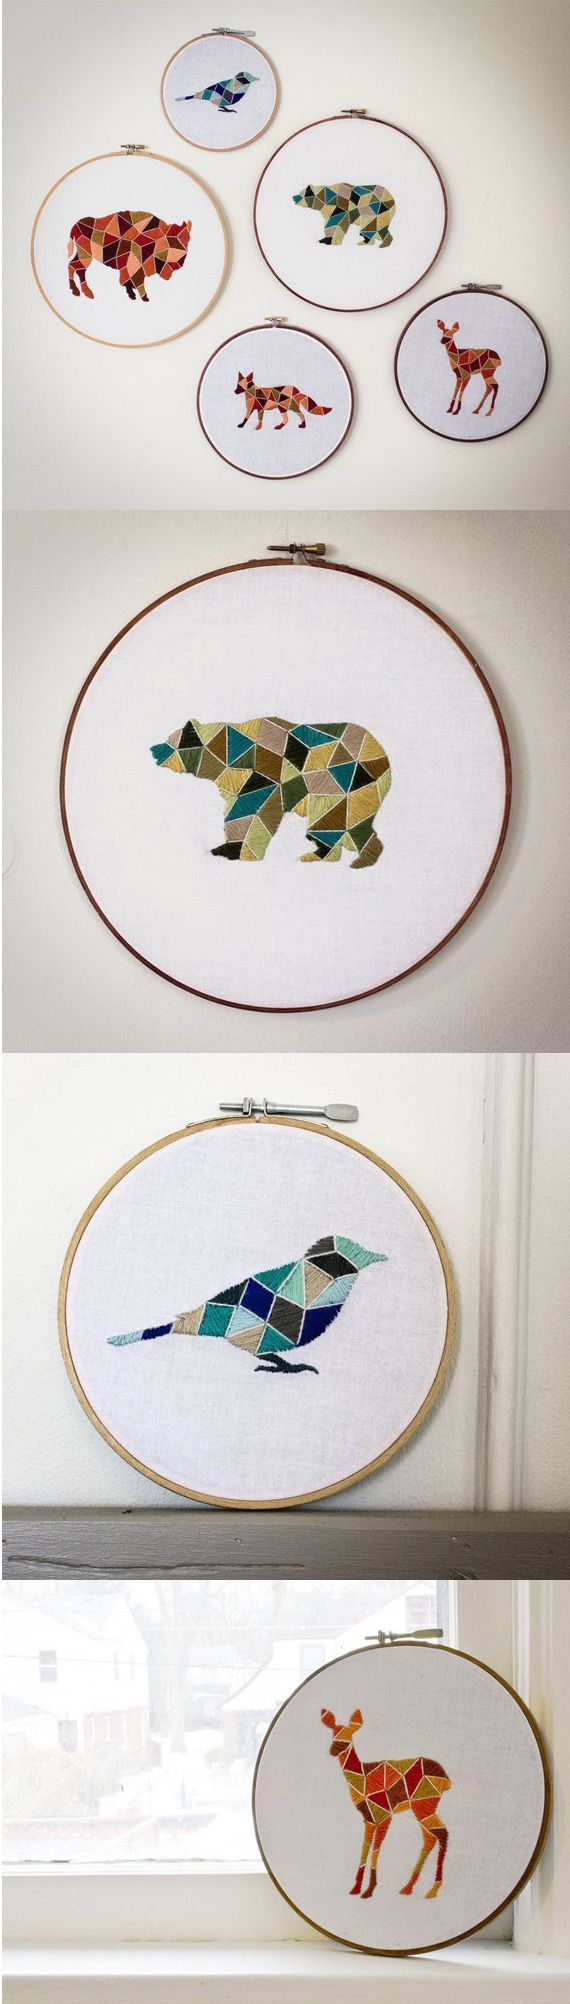 Cute animals, geometric shapes, stitching. Right up our alley.